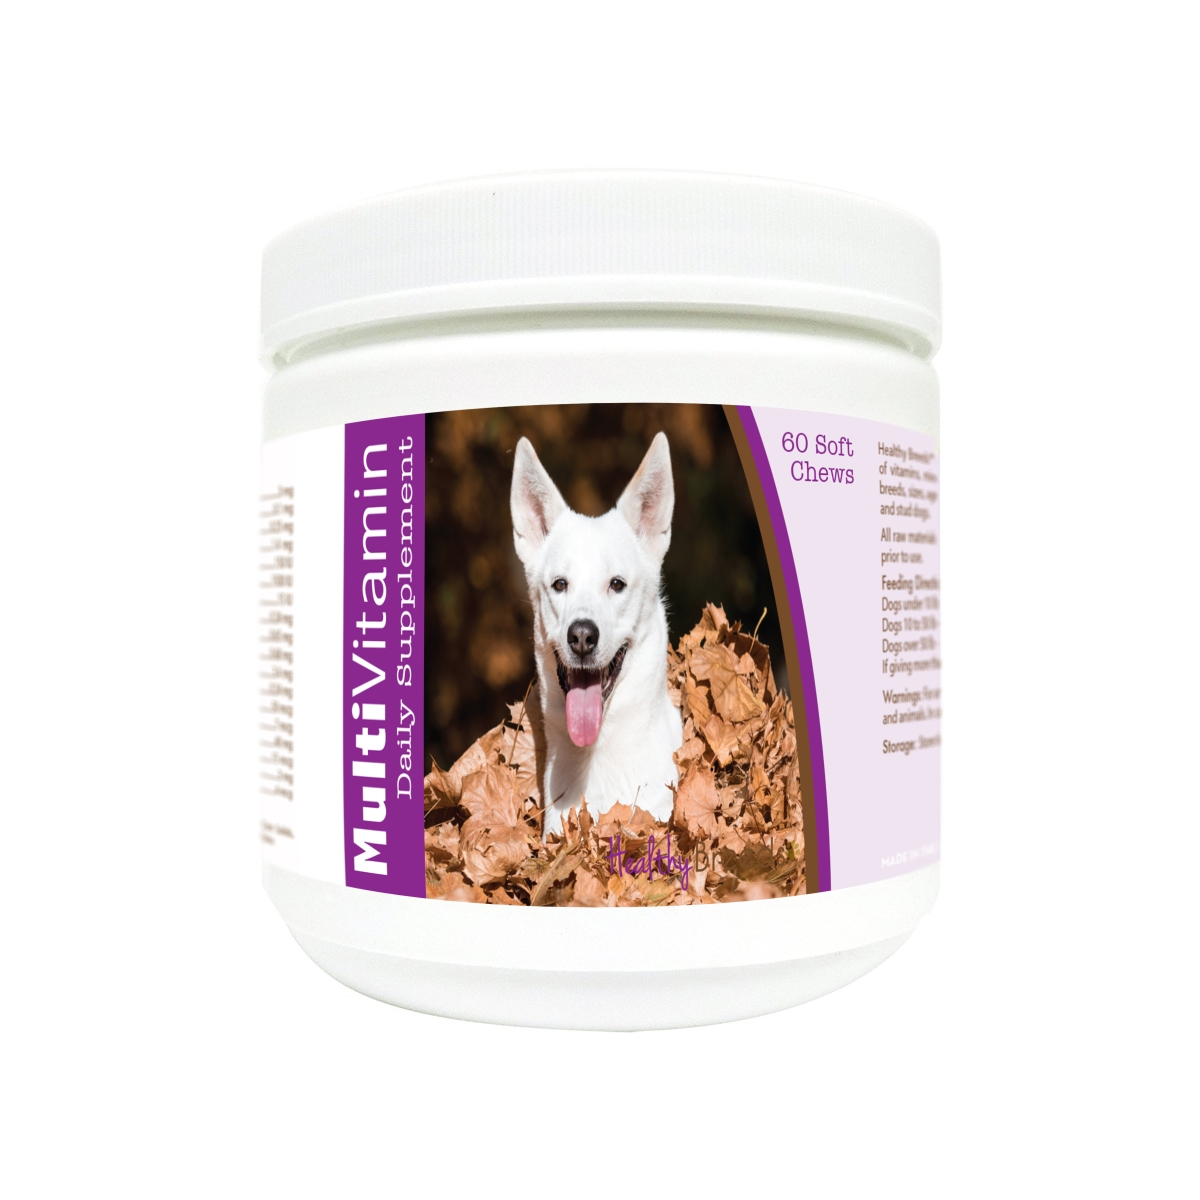 Healthy Breeds 840235181668 Canaan Dog Multi-Vitamin Soft Chews - 60 Count